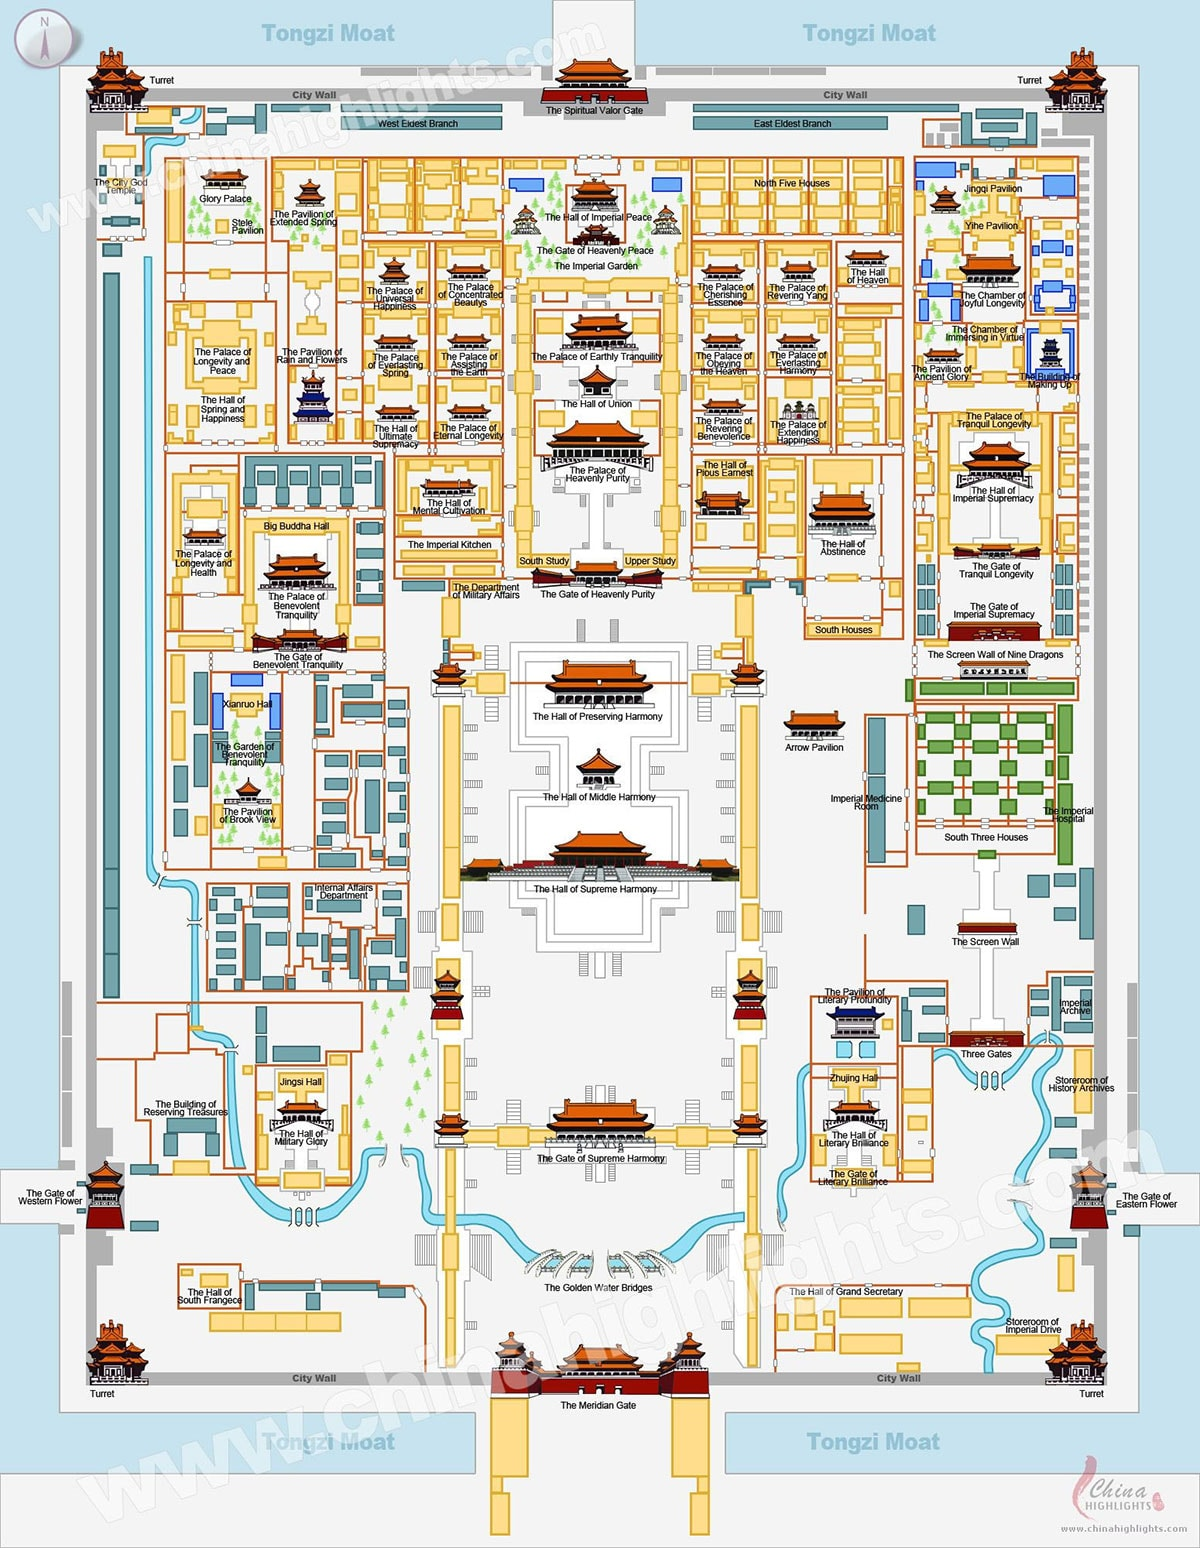 Map, Plan, Forbidden City, Beijing, China, Palace Complex, Attractions, On Your Own, Travelreport